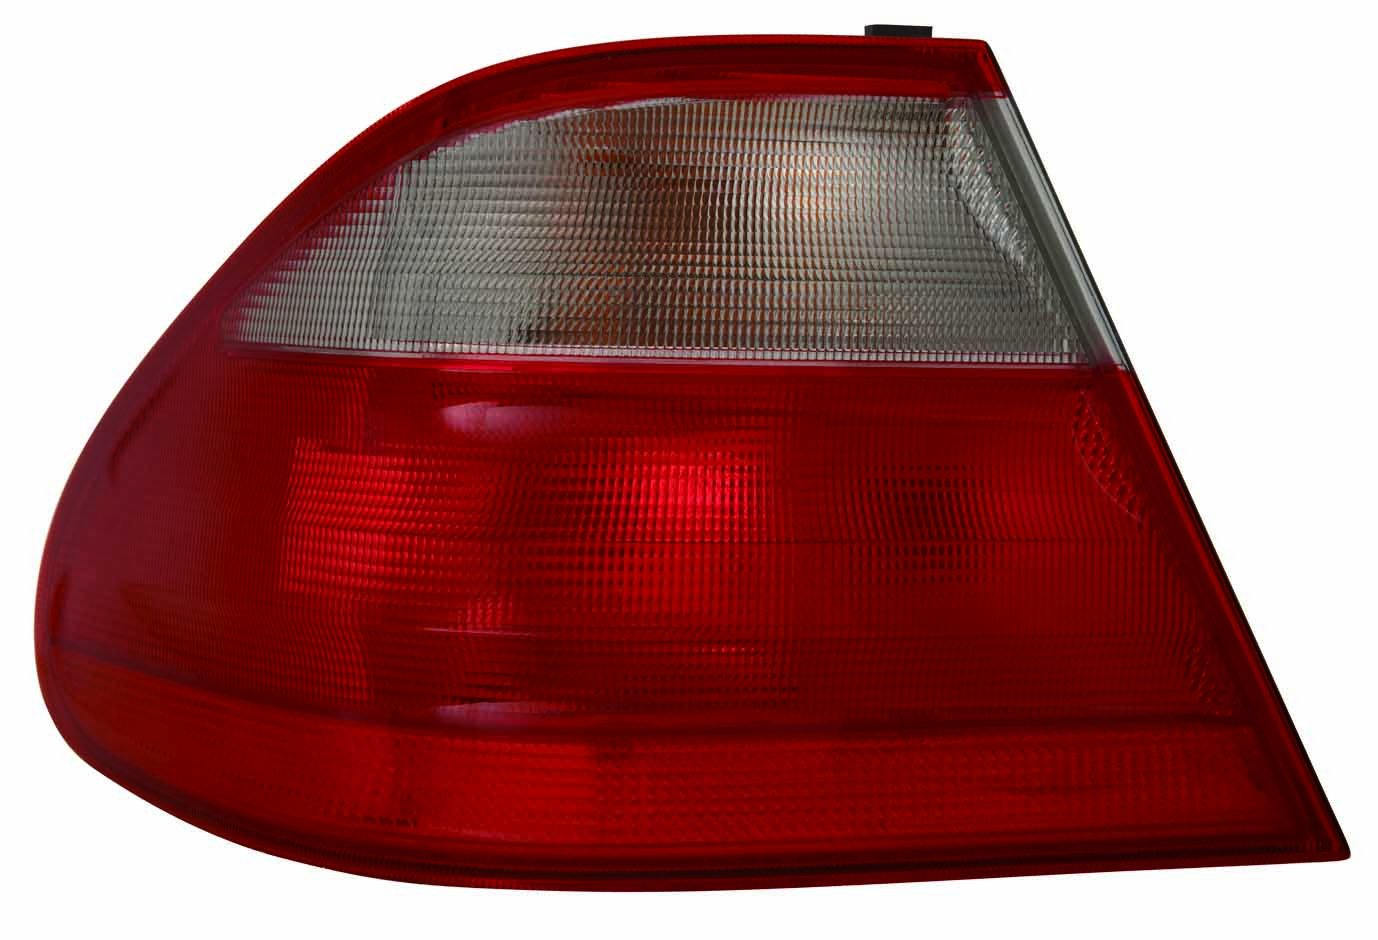 Mercedes Benz Clk 320 430 55 98-03 Outer Tail Light With Bulb Lh 208 820 03 64 DEPO 4333243002